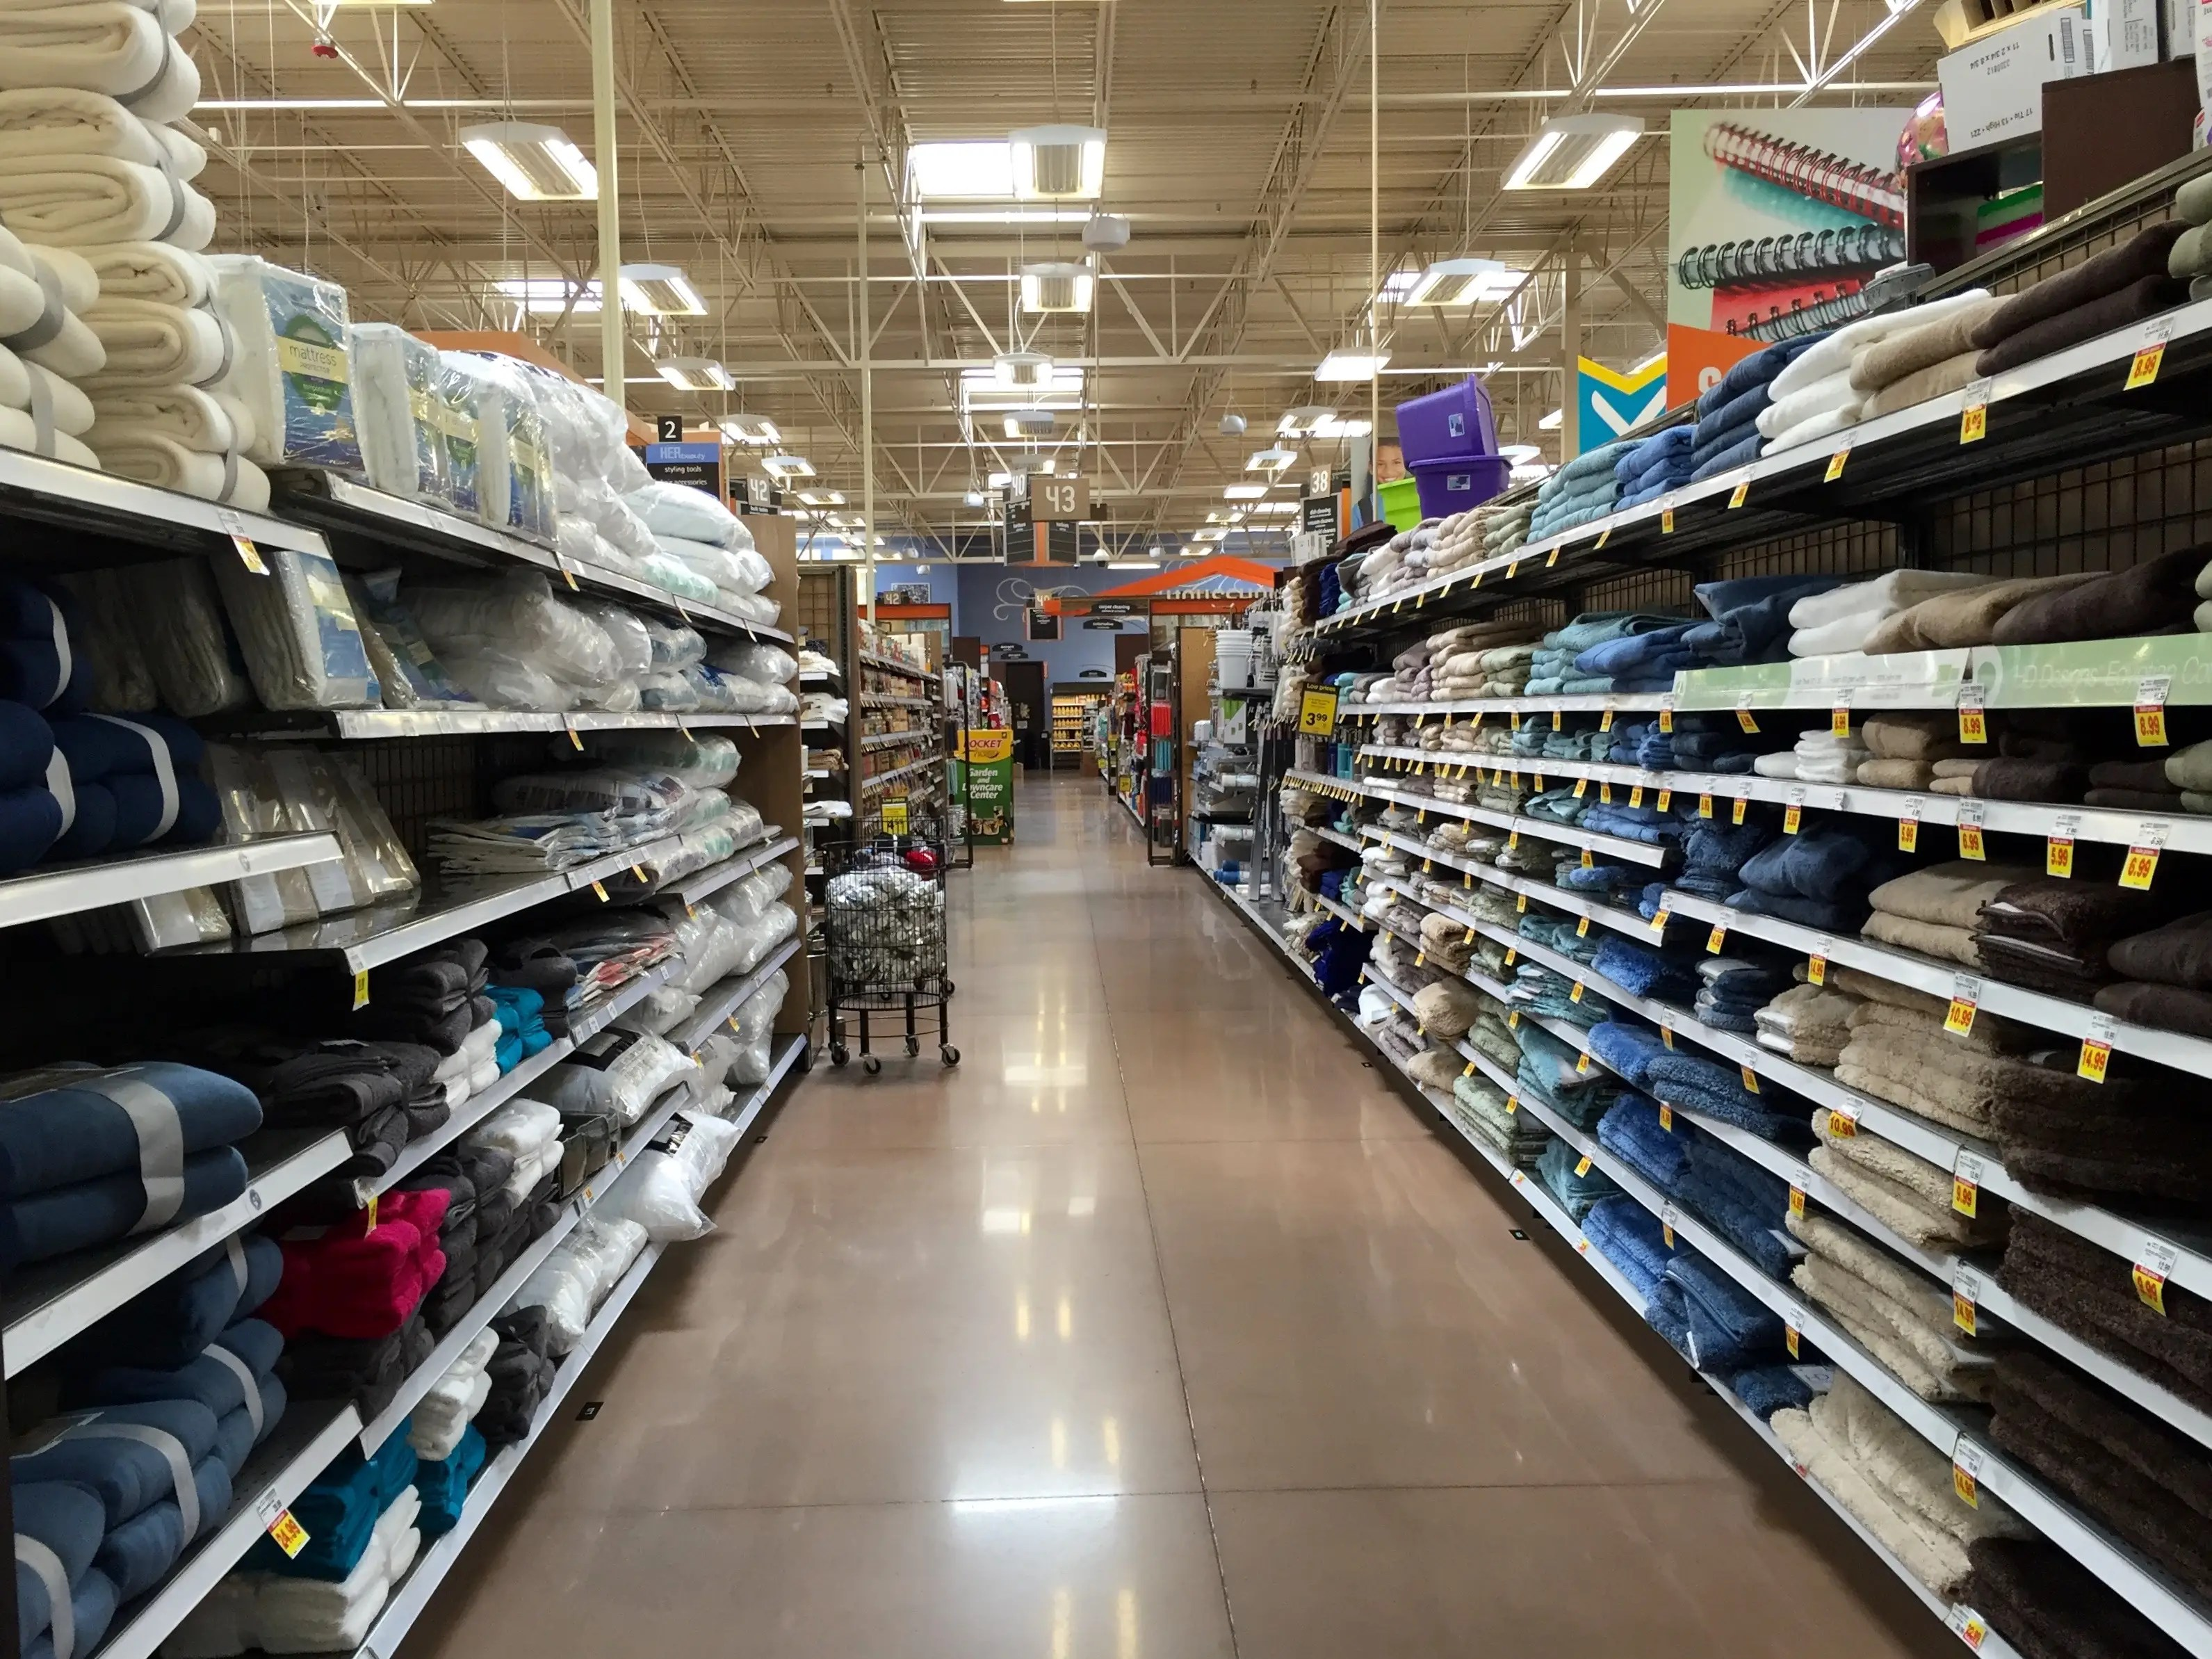 One aisle is devoted to towels and bathroom accessories, such as soap dispensers and trash cans.